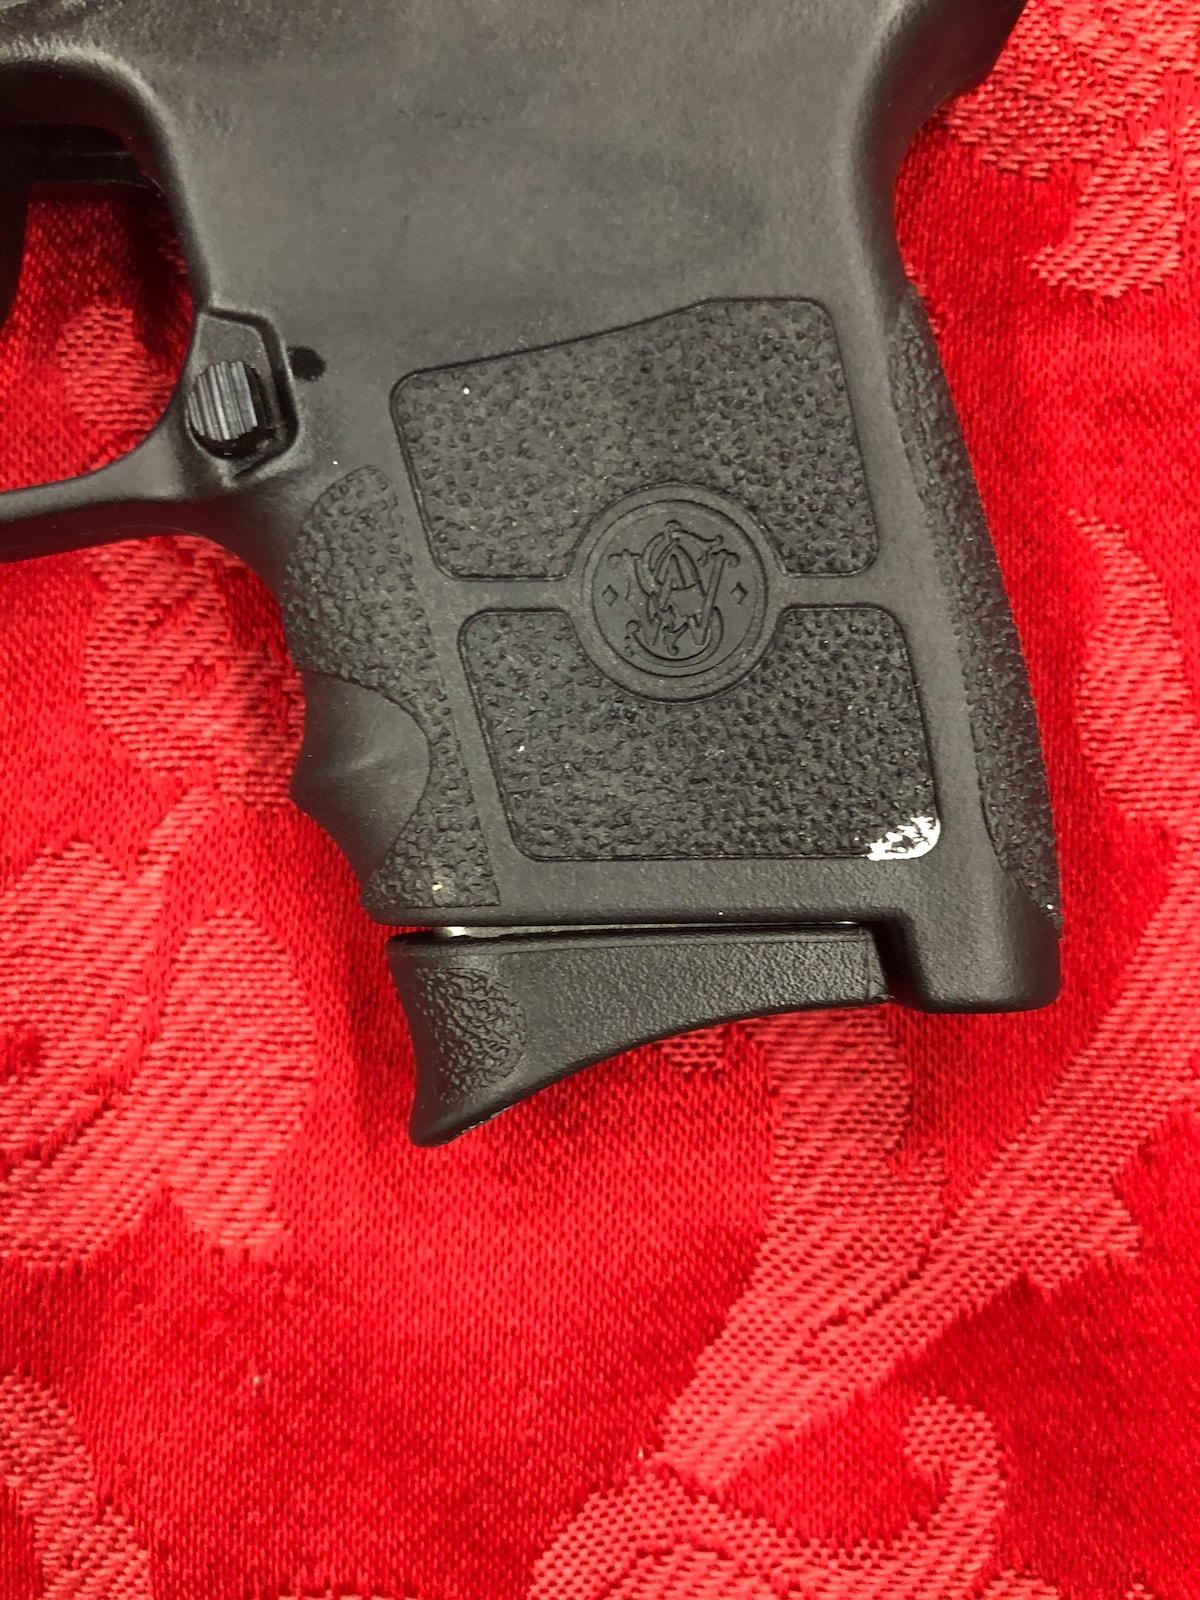 SMITH AND WESSON M&P BODYGUARD